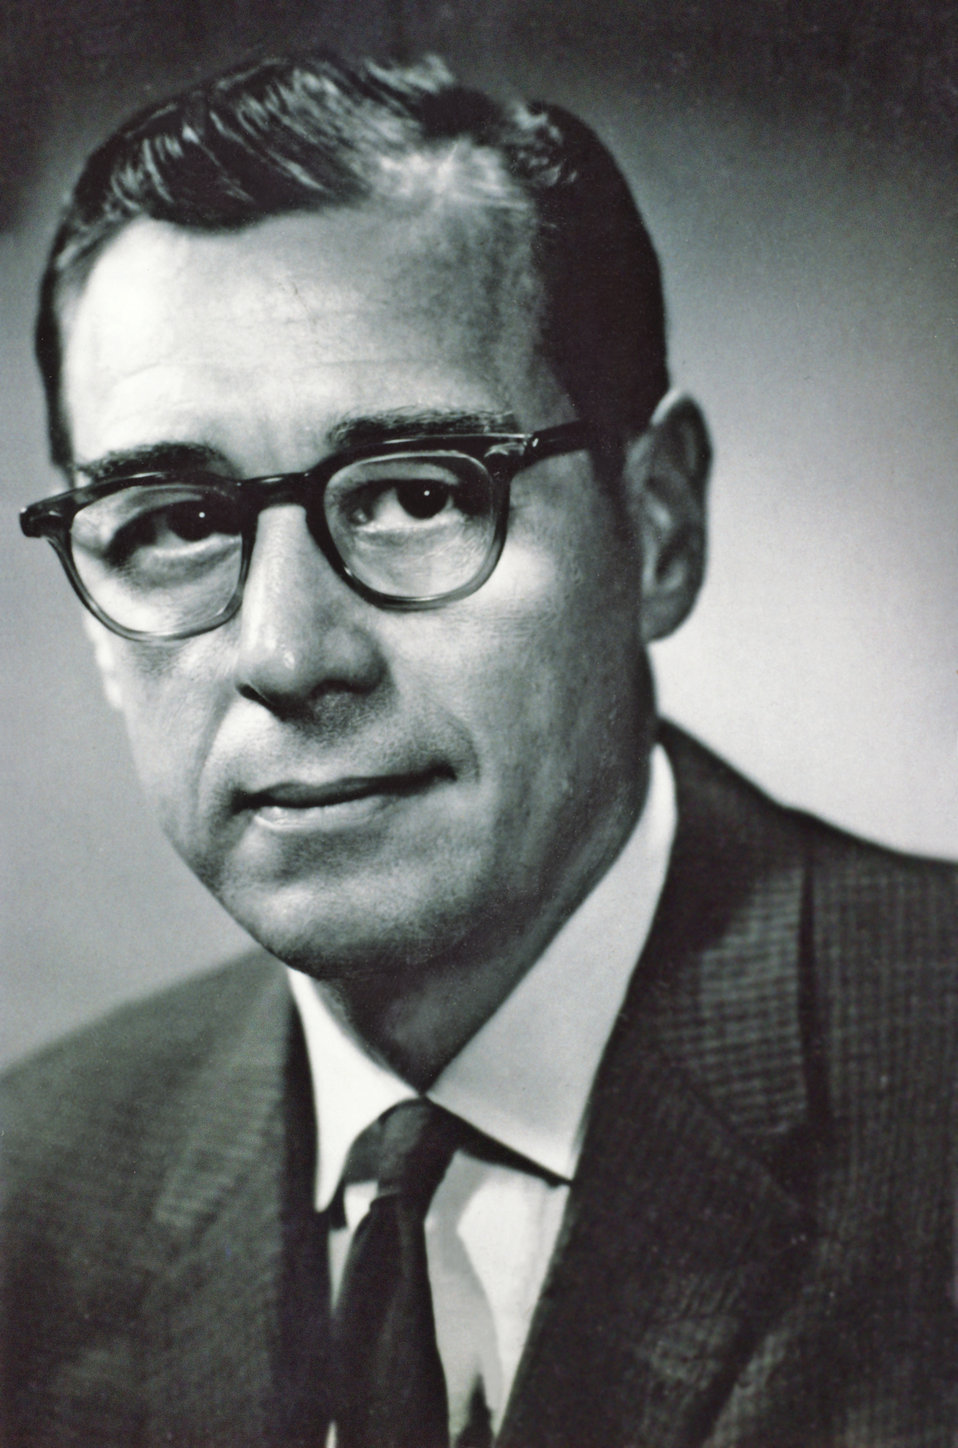 Martin D. Young, Sc.D. (1909 - 2003) was a career U.S. Public Health Service officer, and Director of the Gorgas Memorial Laboratory in Pana